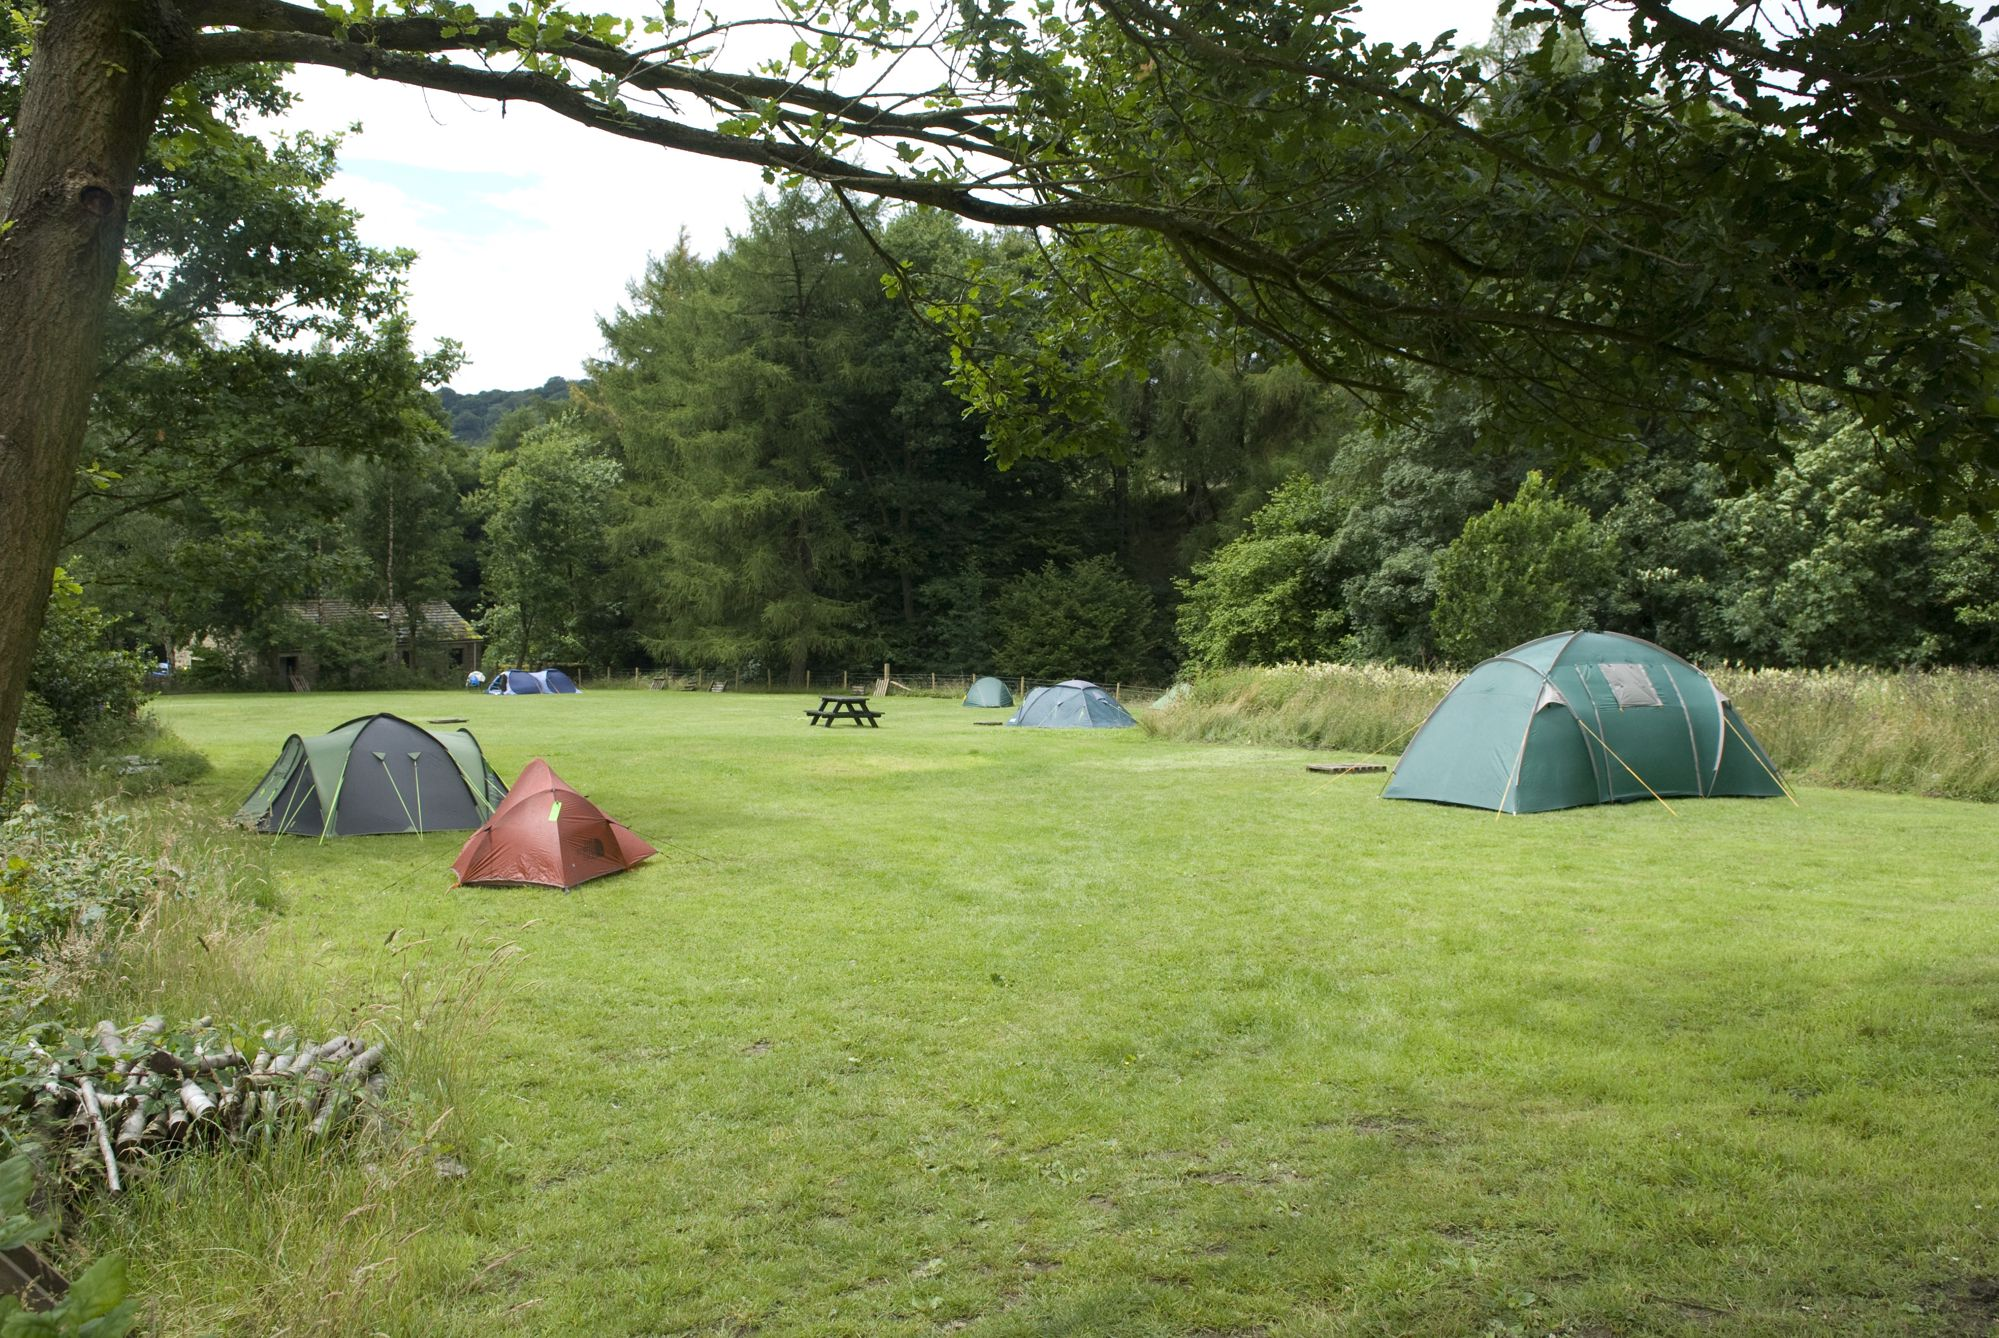 Campsites in the Peak District